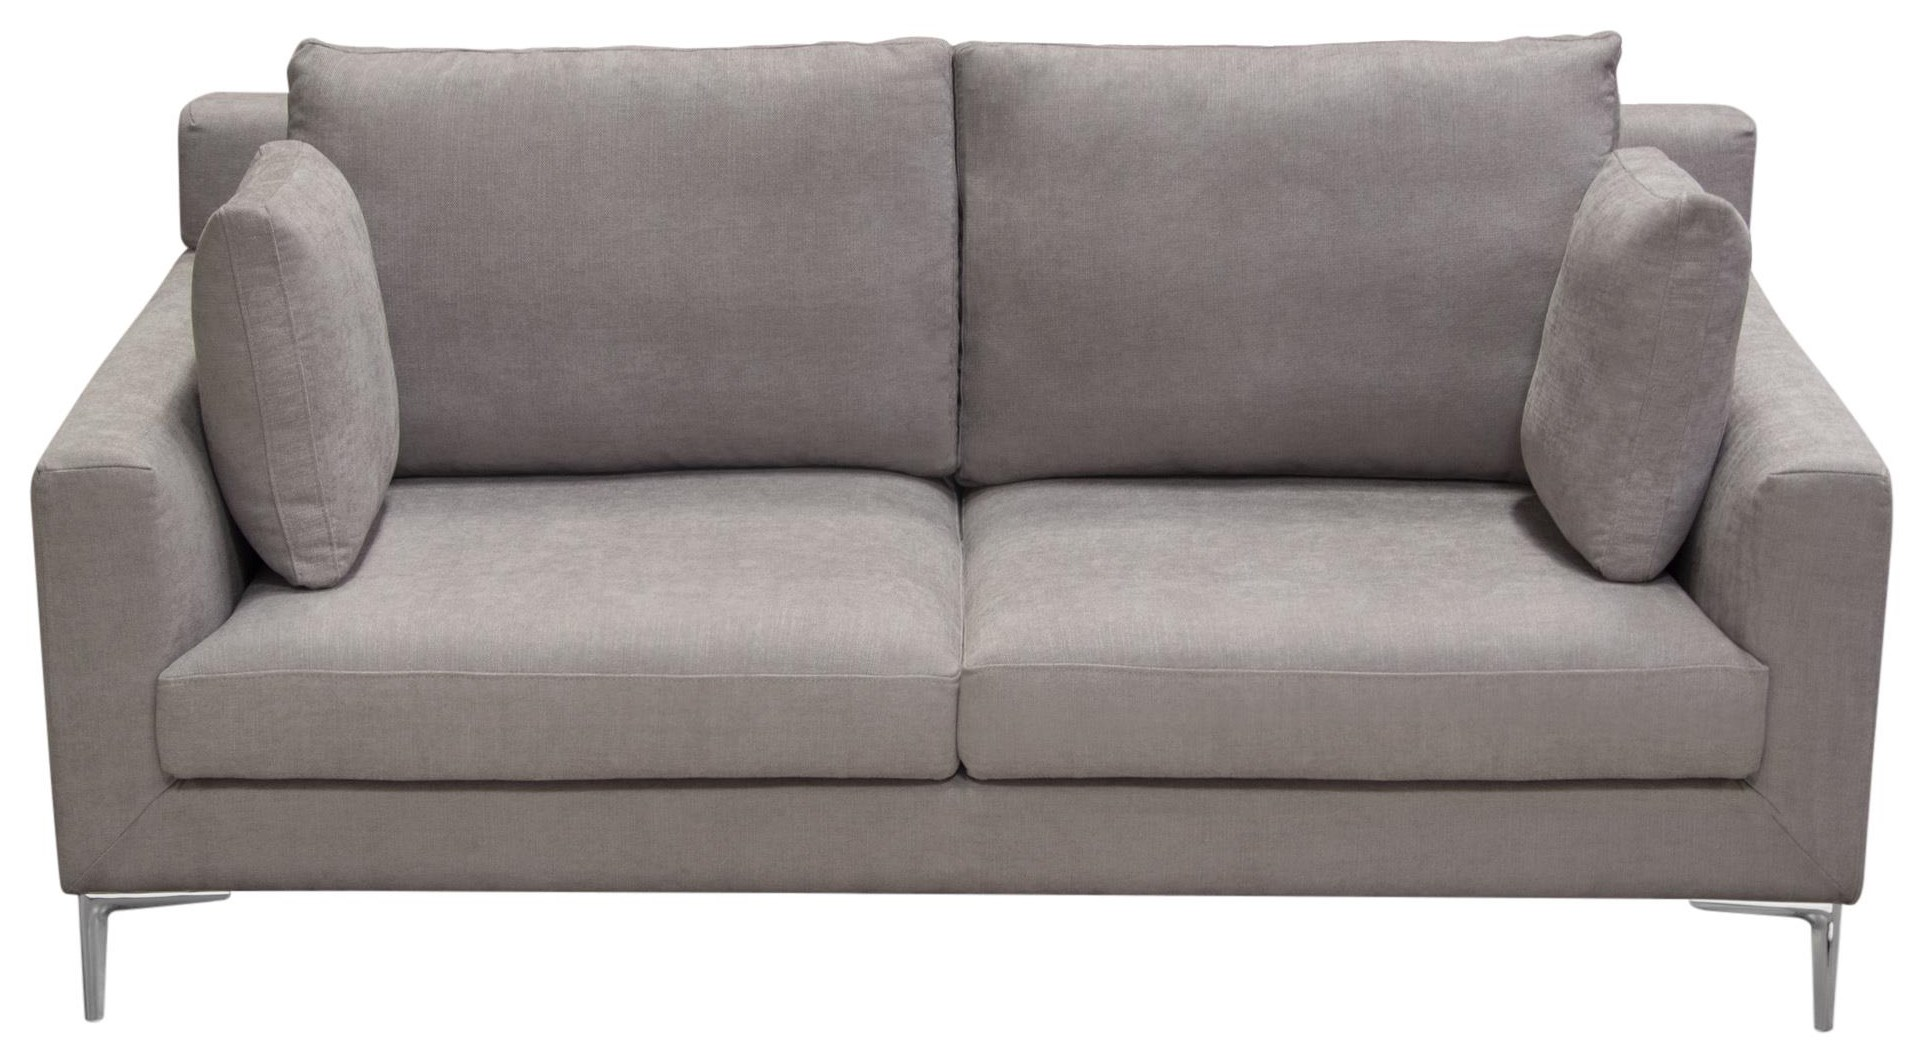 Seattle Loveseat by Diamond Sofa at Red Knot